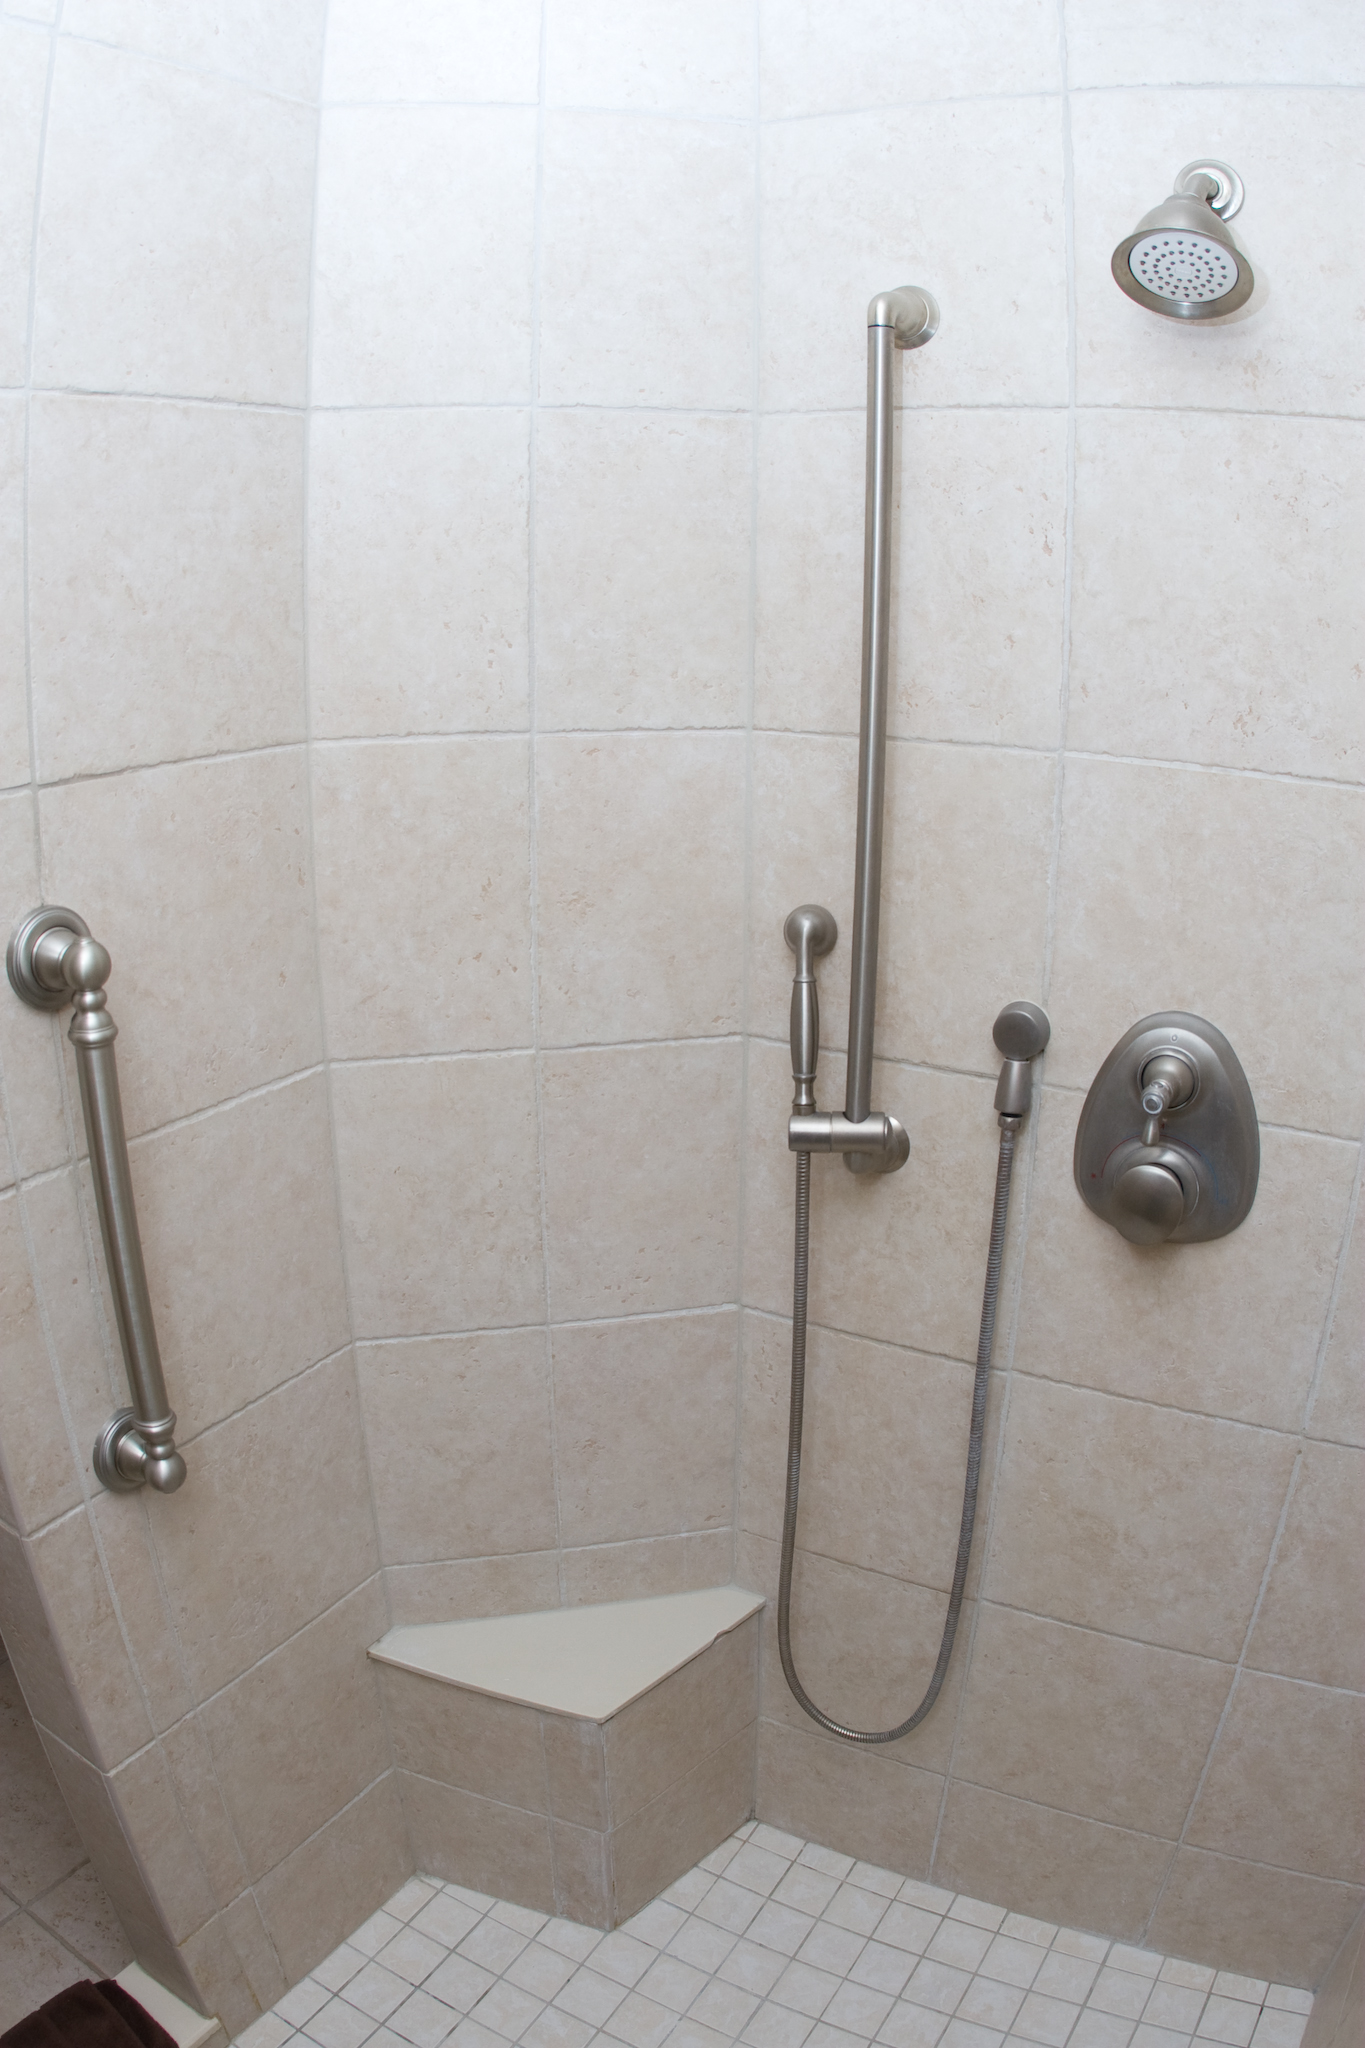 Shower seat built in with grab bars. - Lancaster PA Remodeling Tips & TricksLancaster PA ...